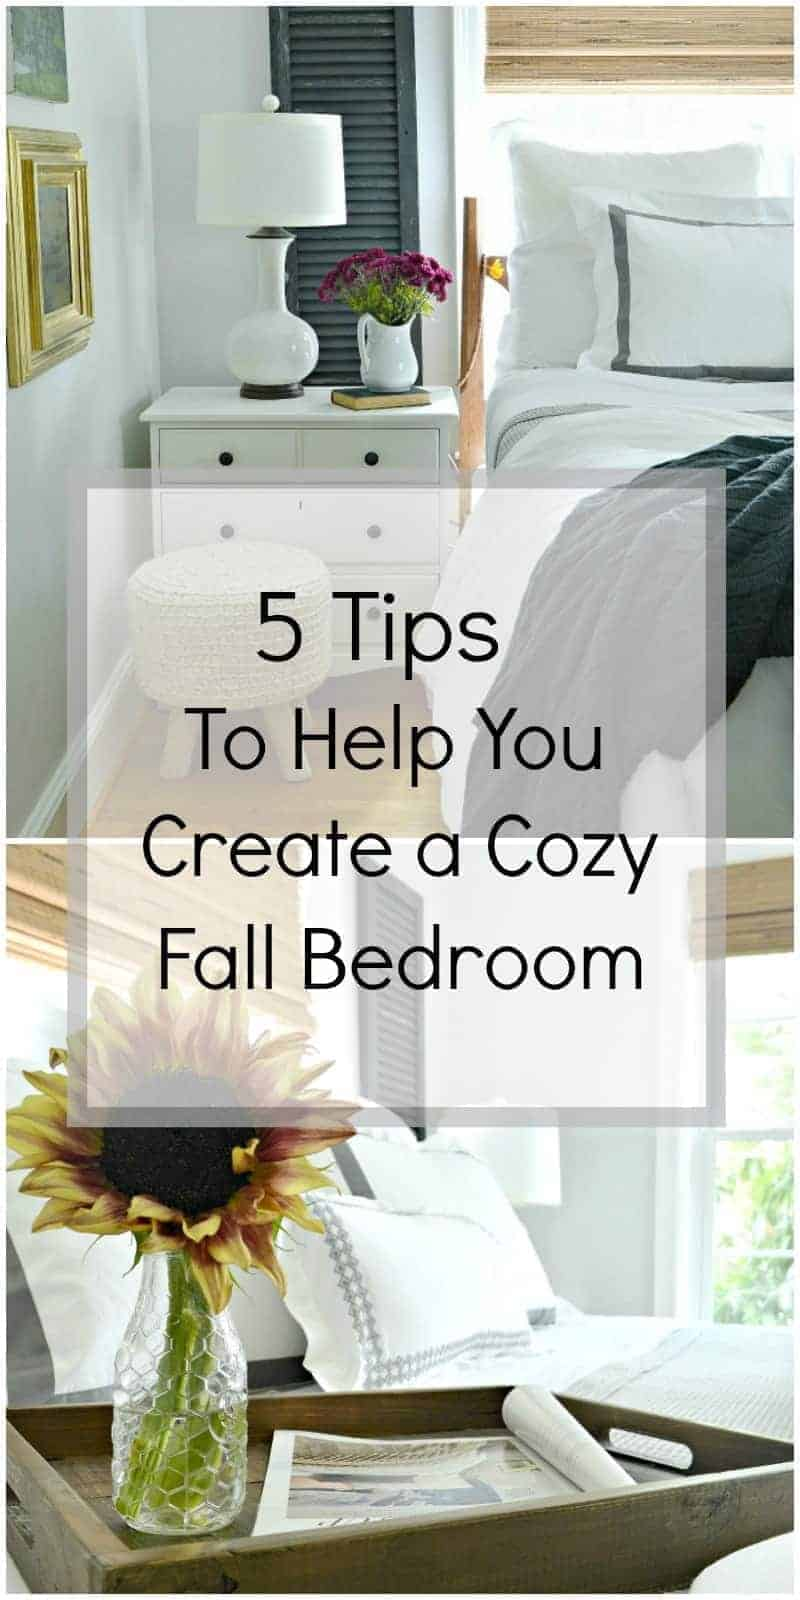 5 Tips To Create A Cozy Bedroom For Fall